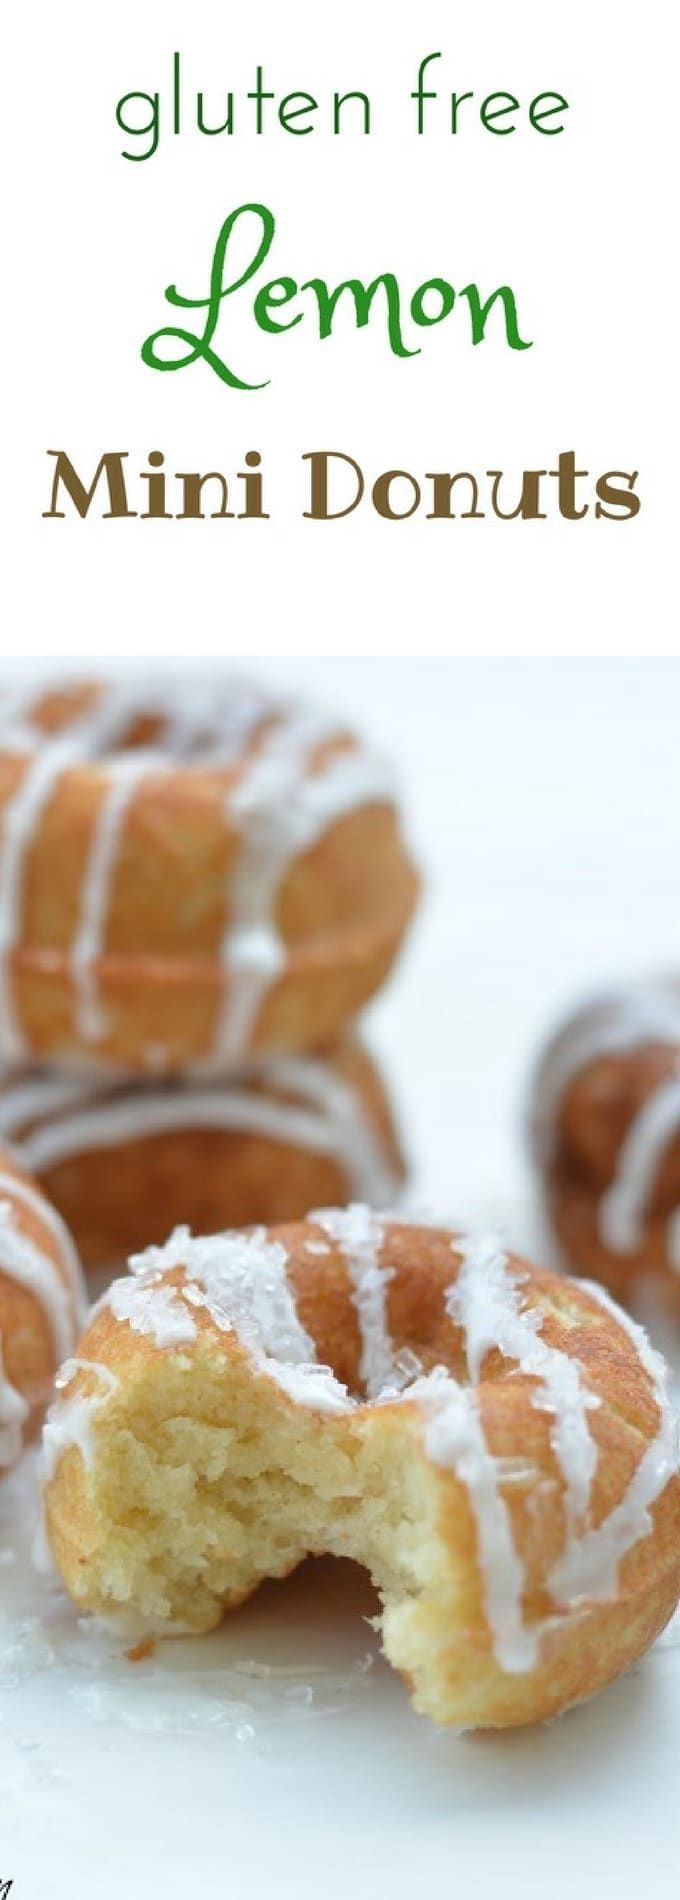 These gluten free lemon mini donuts are delicious bite-sized donuts that are packed full of flavor. Easy to make in a donut maker or pan. Recipe at http://www.fearlessdining.com via /fearlessdining/